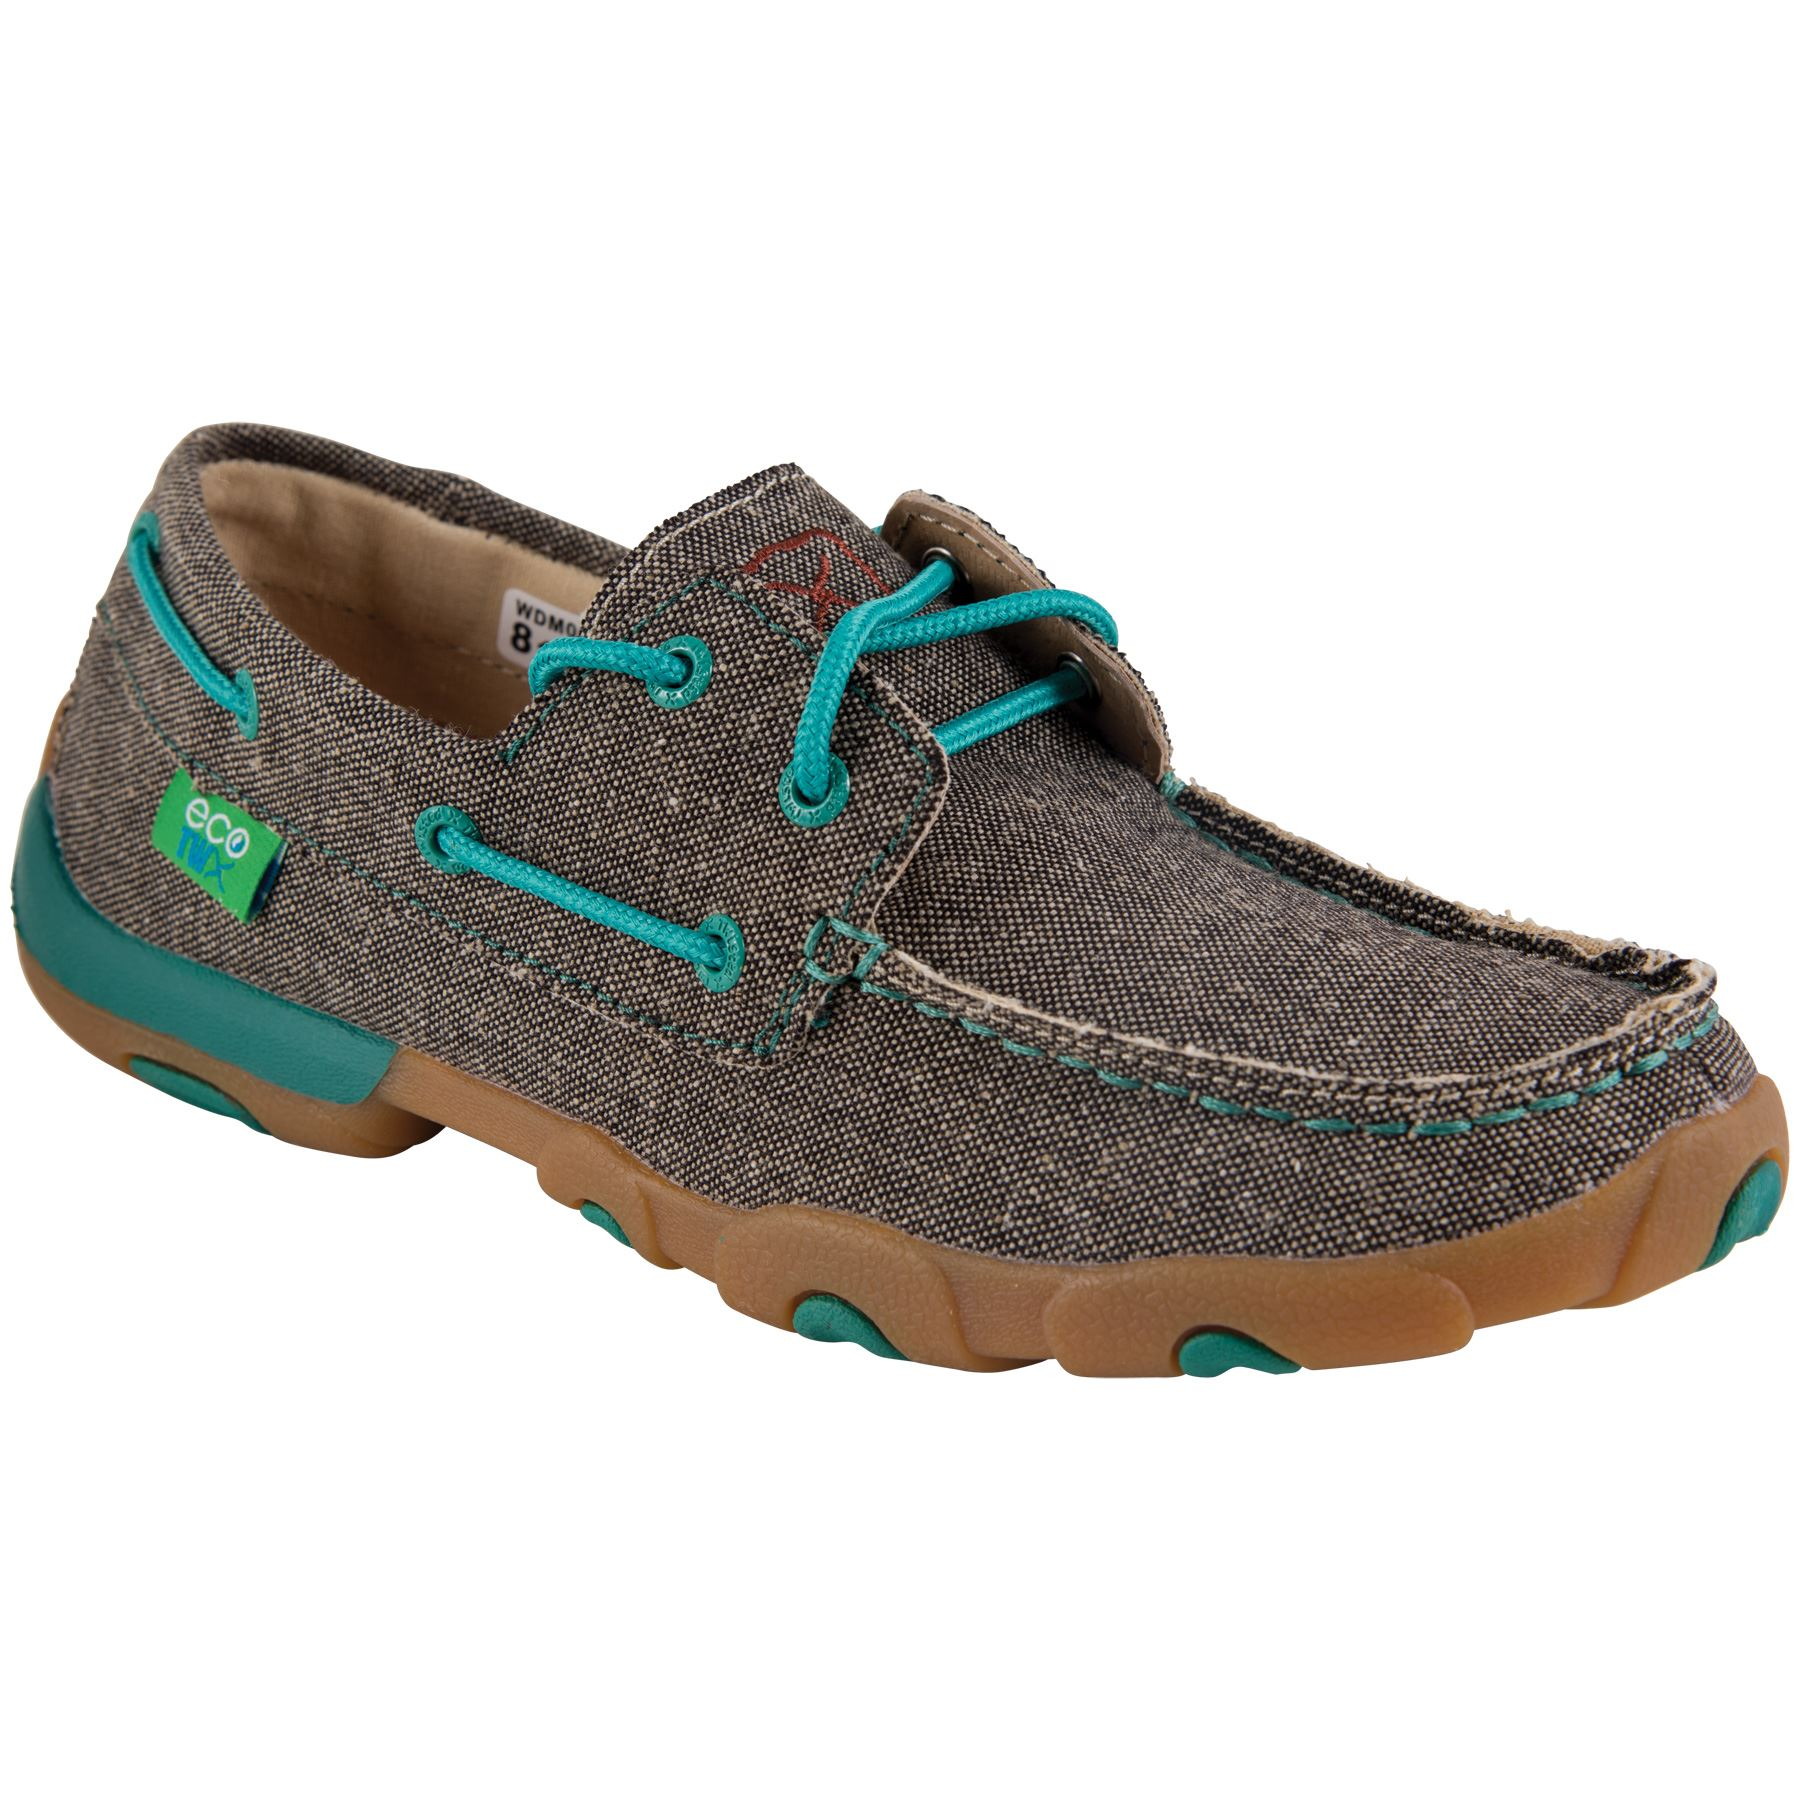 16dc1476de5 Twisted X Women s ECO TWX Driving Mocs in Apparel Boots at Schneider ...